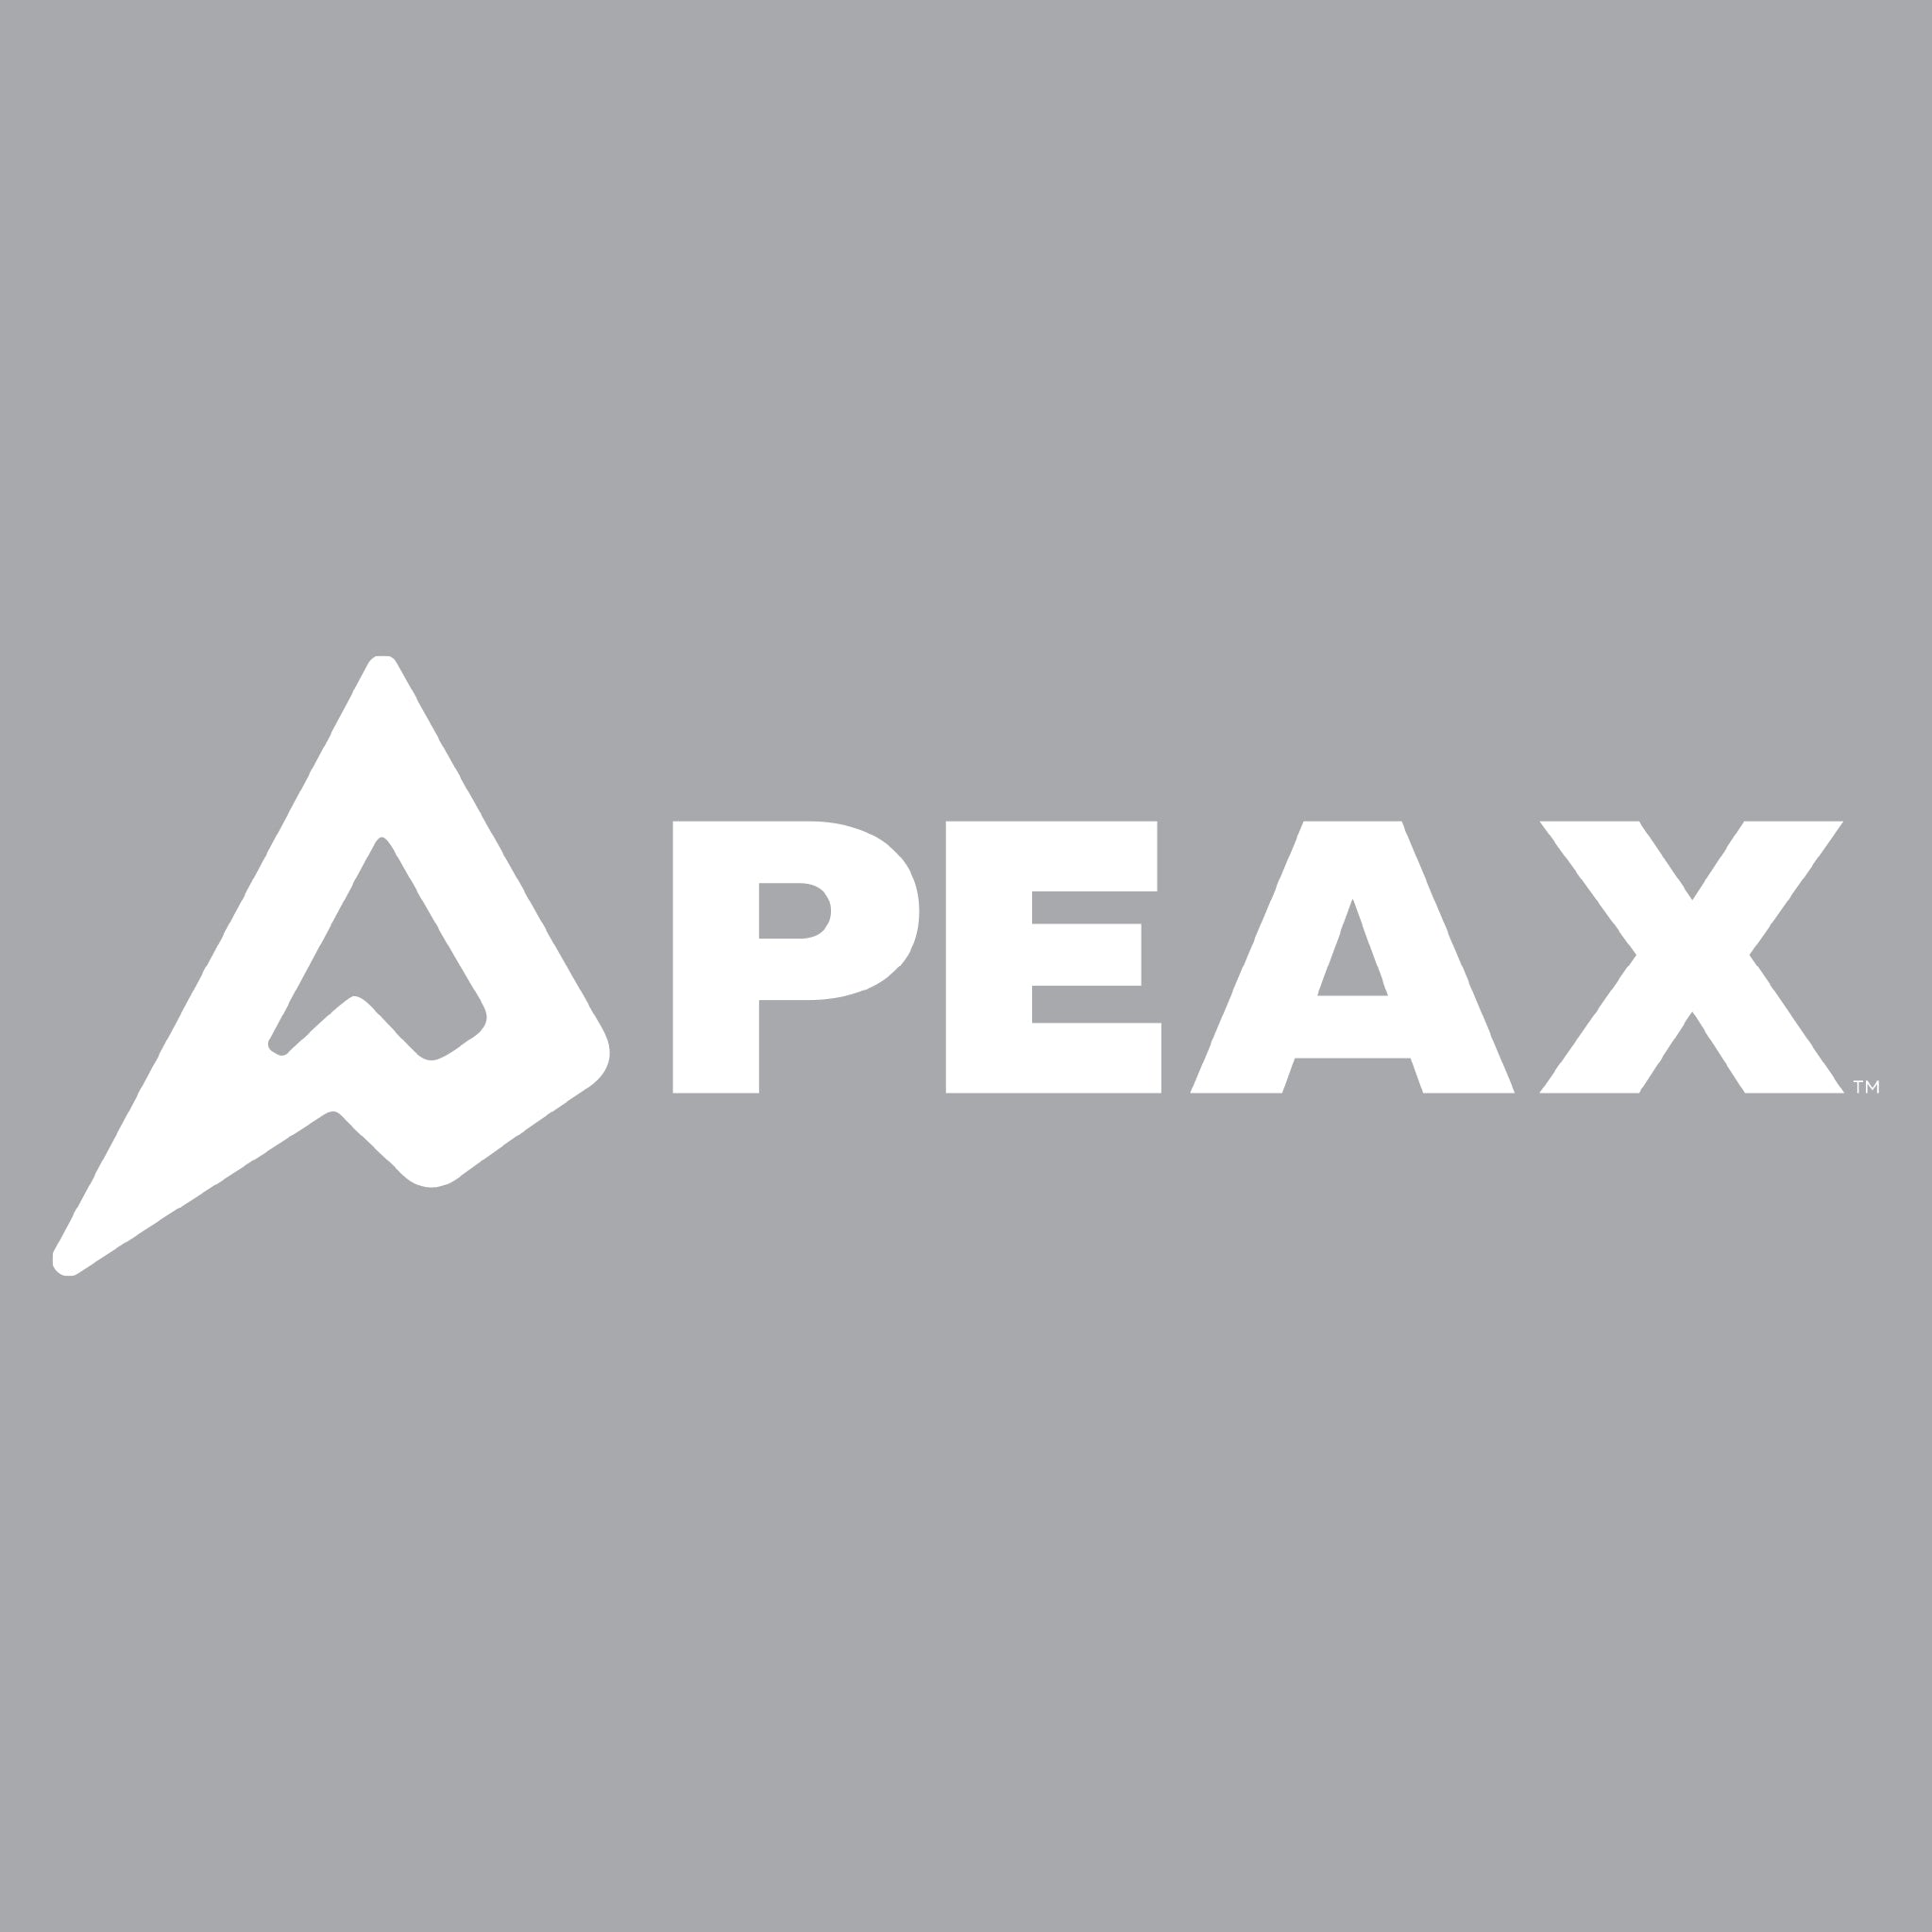 PEAX - TRANSFER DECAL STICKER (Small)